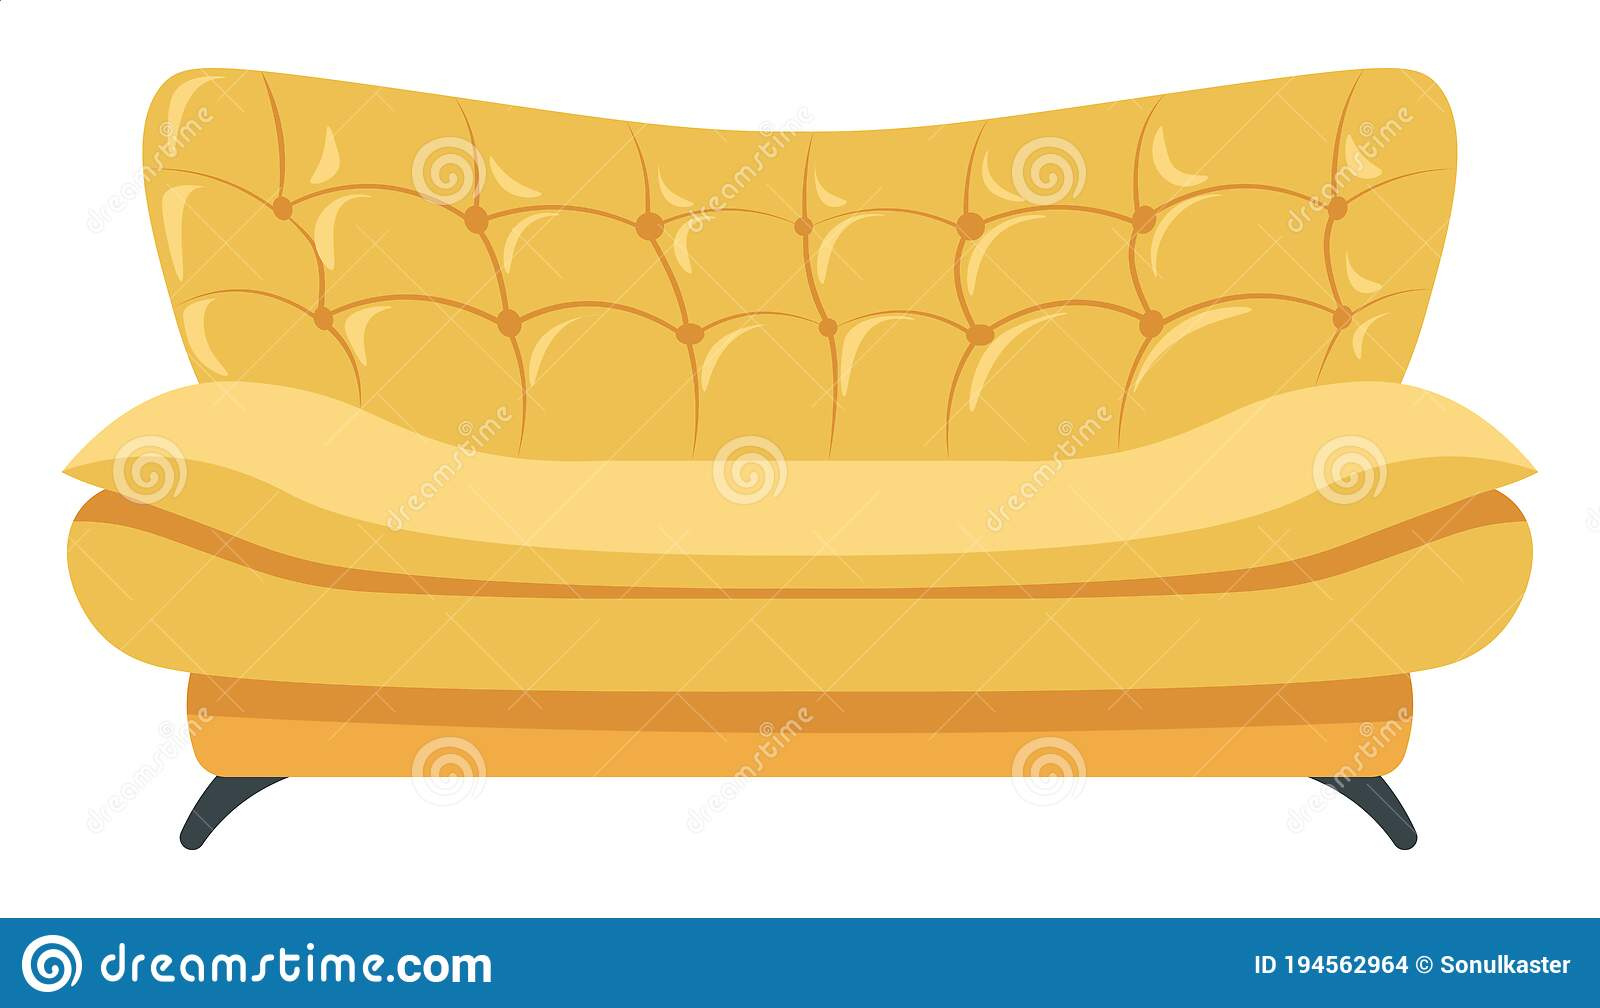 Stylish Leather Sofa For Home Or Office Interior Stock Vector Illustration Of Cozy Comfort 194562964